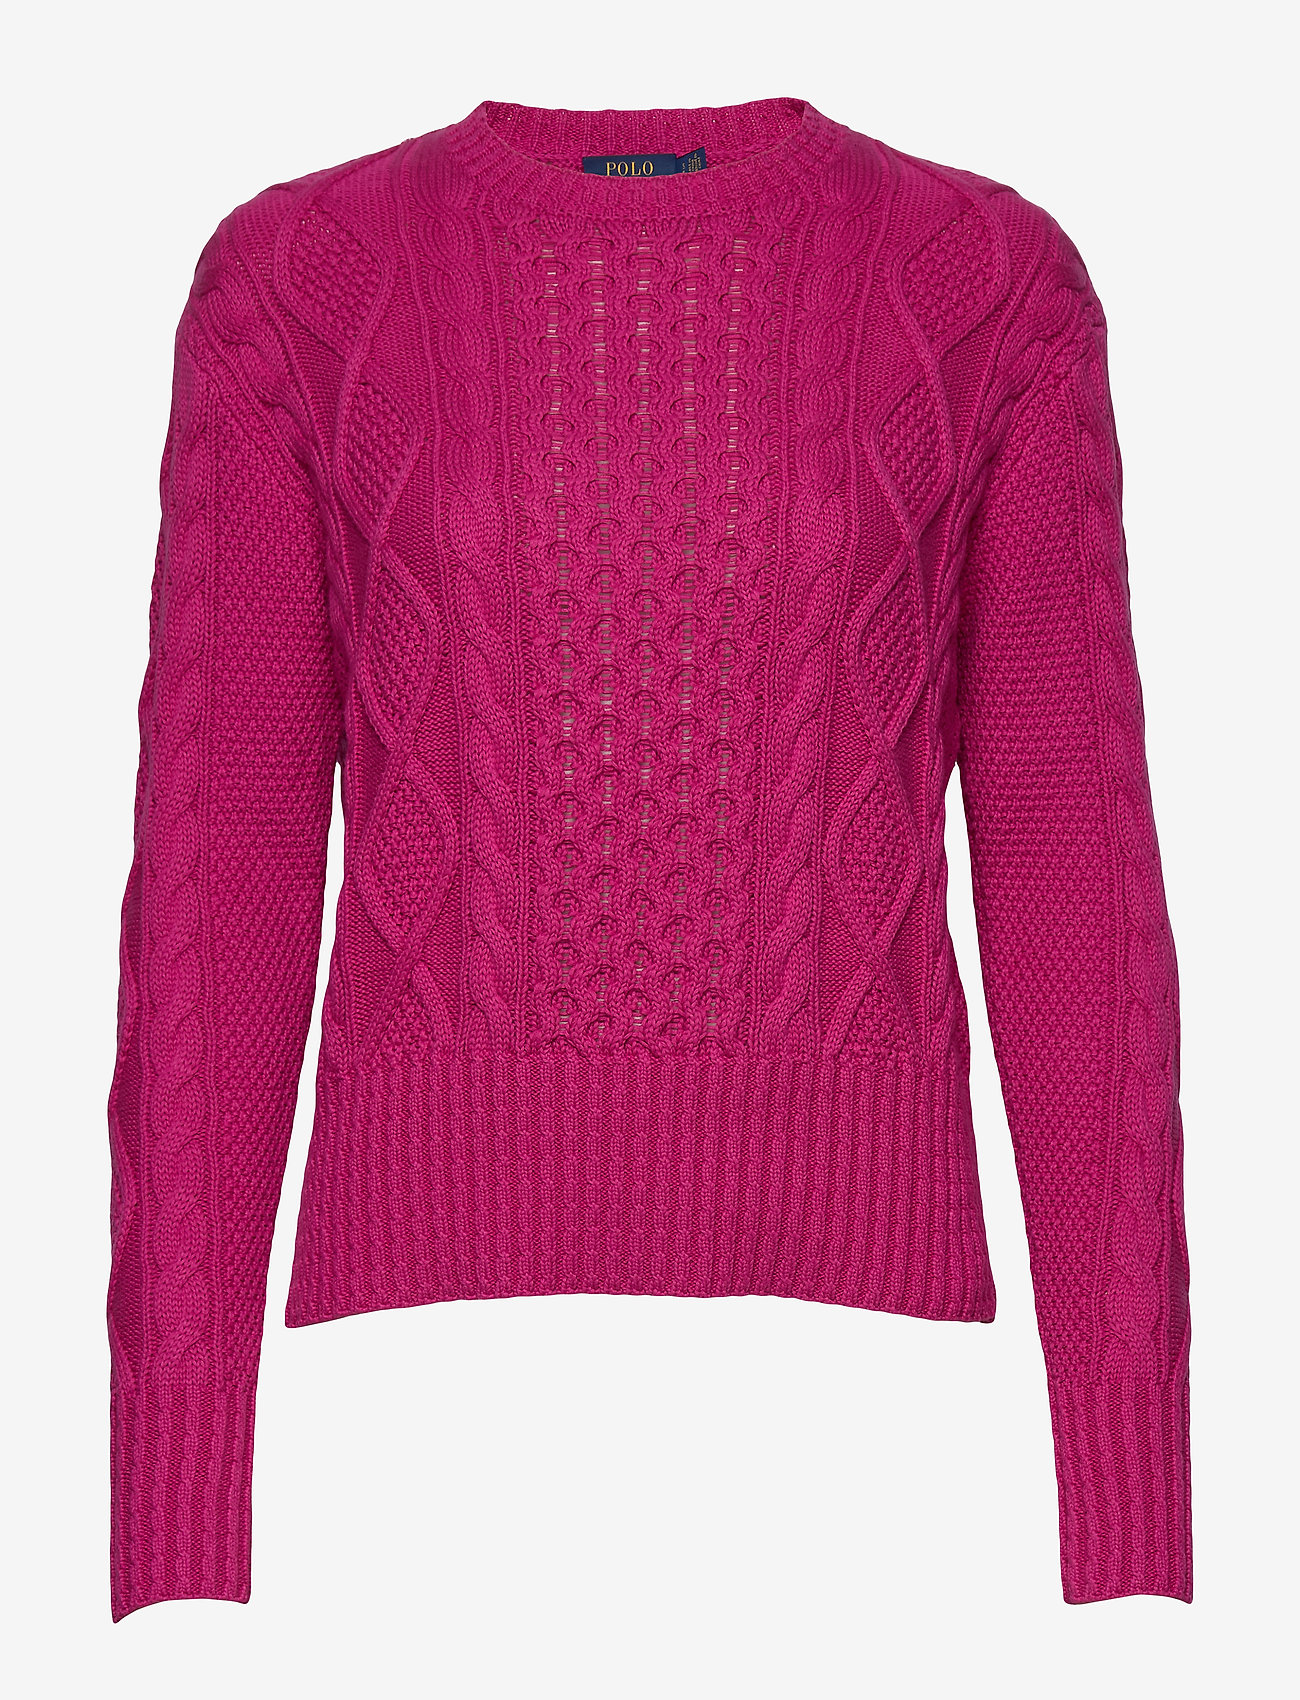 Polo Ralph Lauren - Cotton Cable-Knit Sweater - jumpers - accent pink - 0